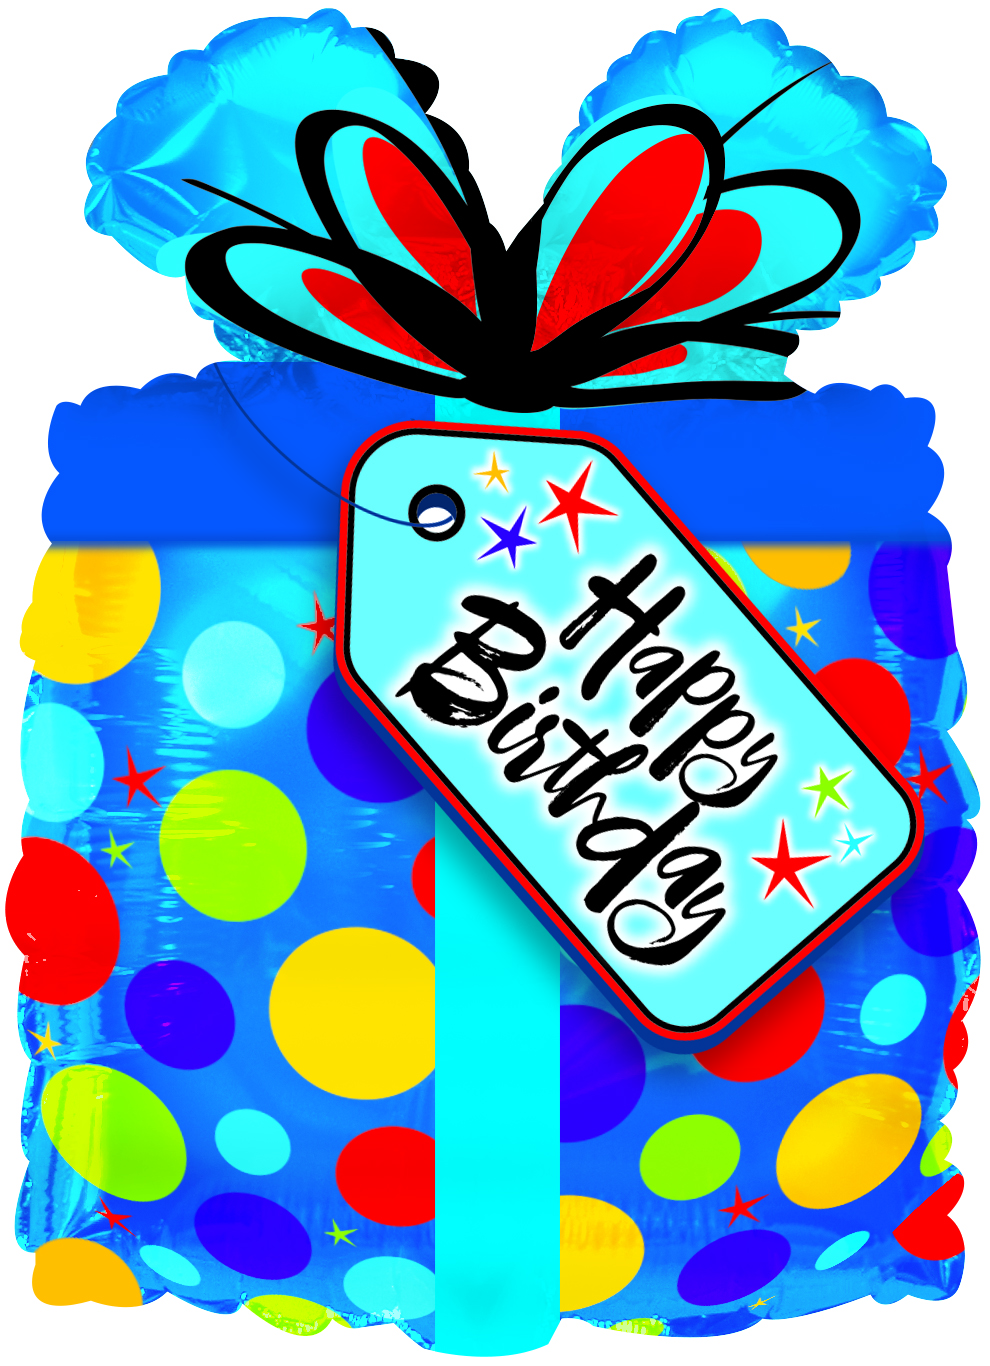 10 Airfill Only Happy Birthday Blue Present Foil Balloon Bargain Balloons Mylar Balloons And Foil Balloons